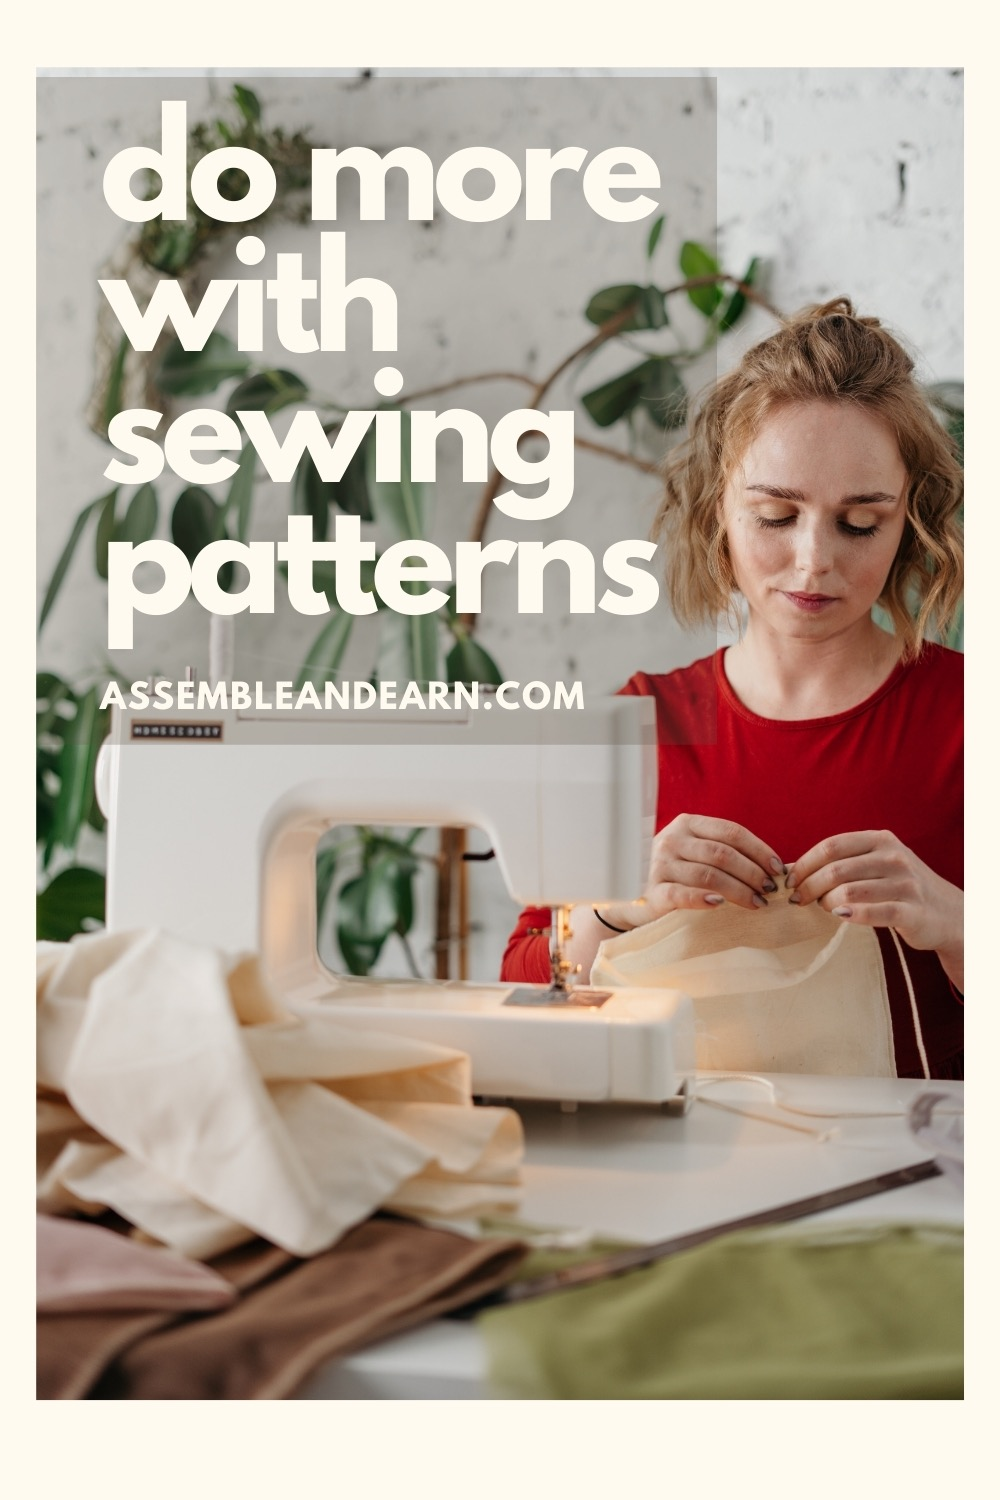 Sewing patterns uses